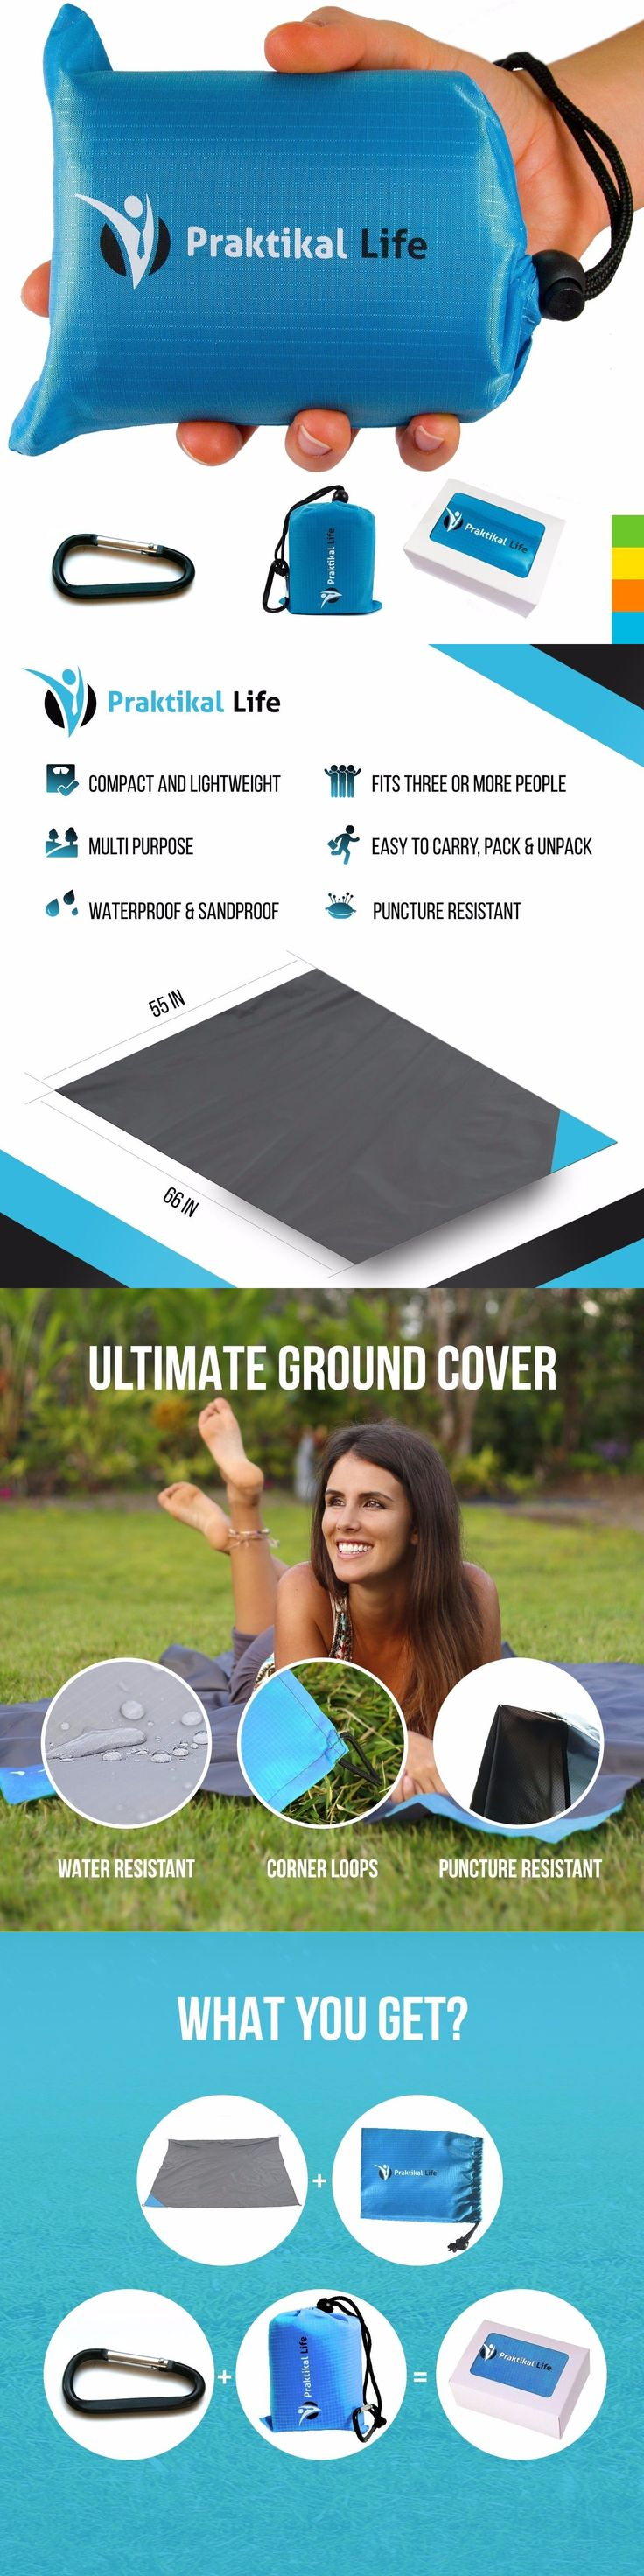 Blankets and Liners 111261: Beach Blanket Sand Proof Picnic Large Throw Outdoor Waterproof Handy Compact New -> BUY IT NOW ONLY: $32.25 on eBay!